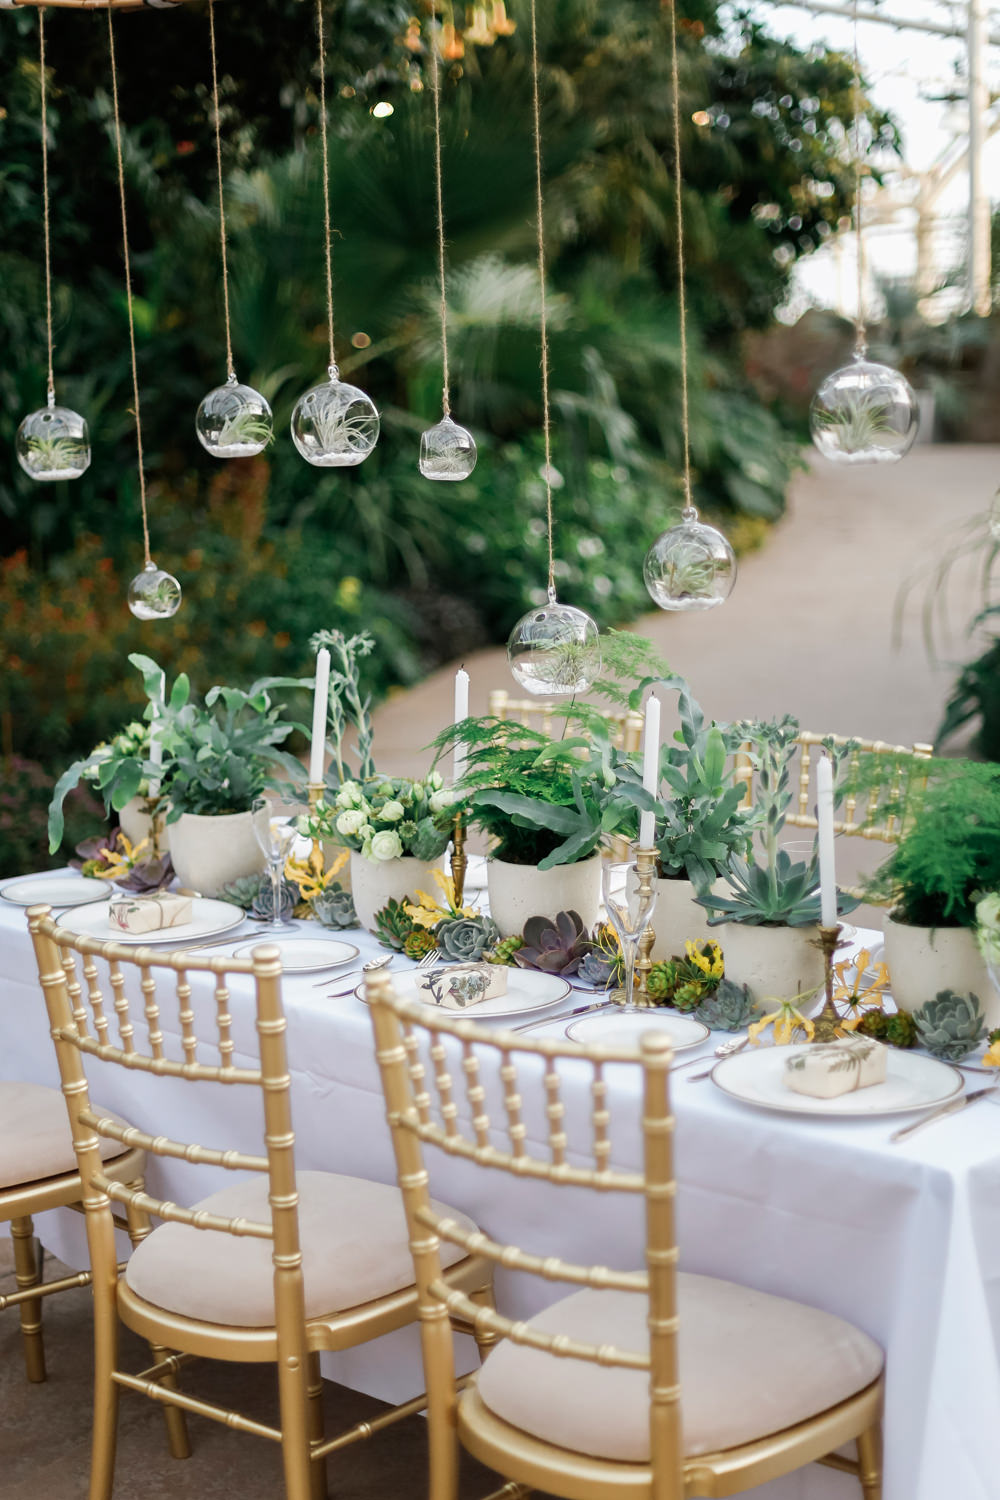 Wedding Ideas Peacock Themed: Greenery Wedding Decor Wisley Venue Hire Botanical Wedding